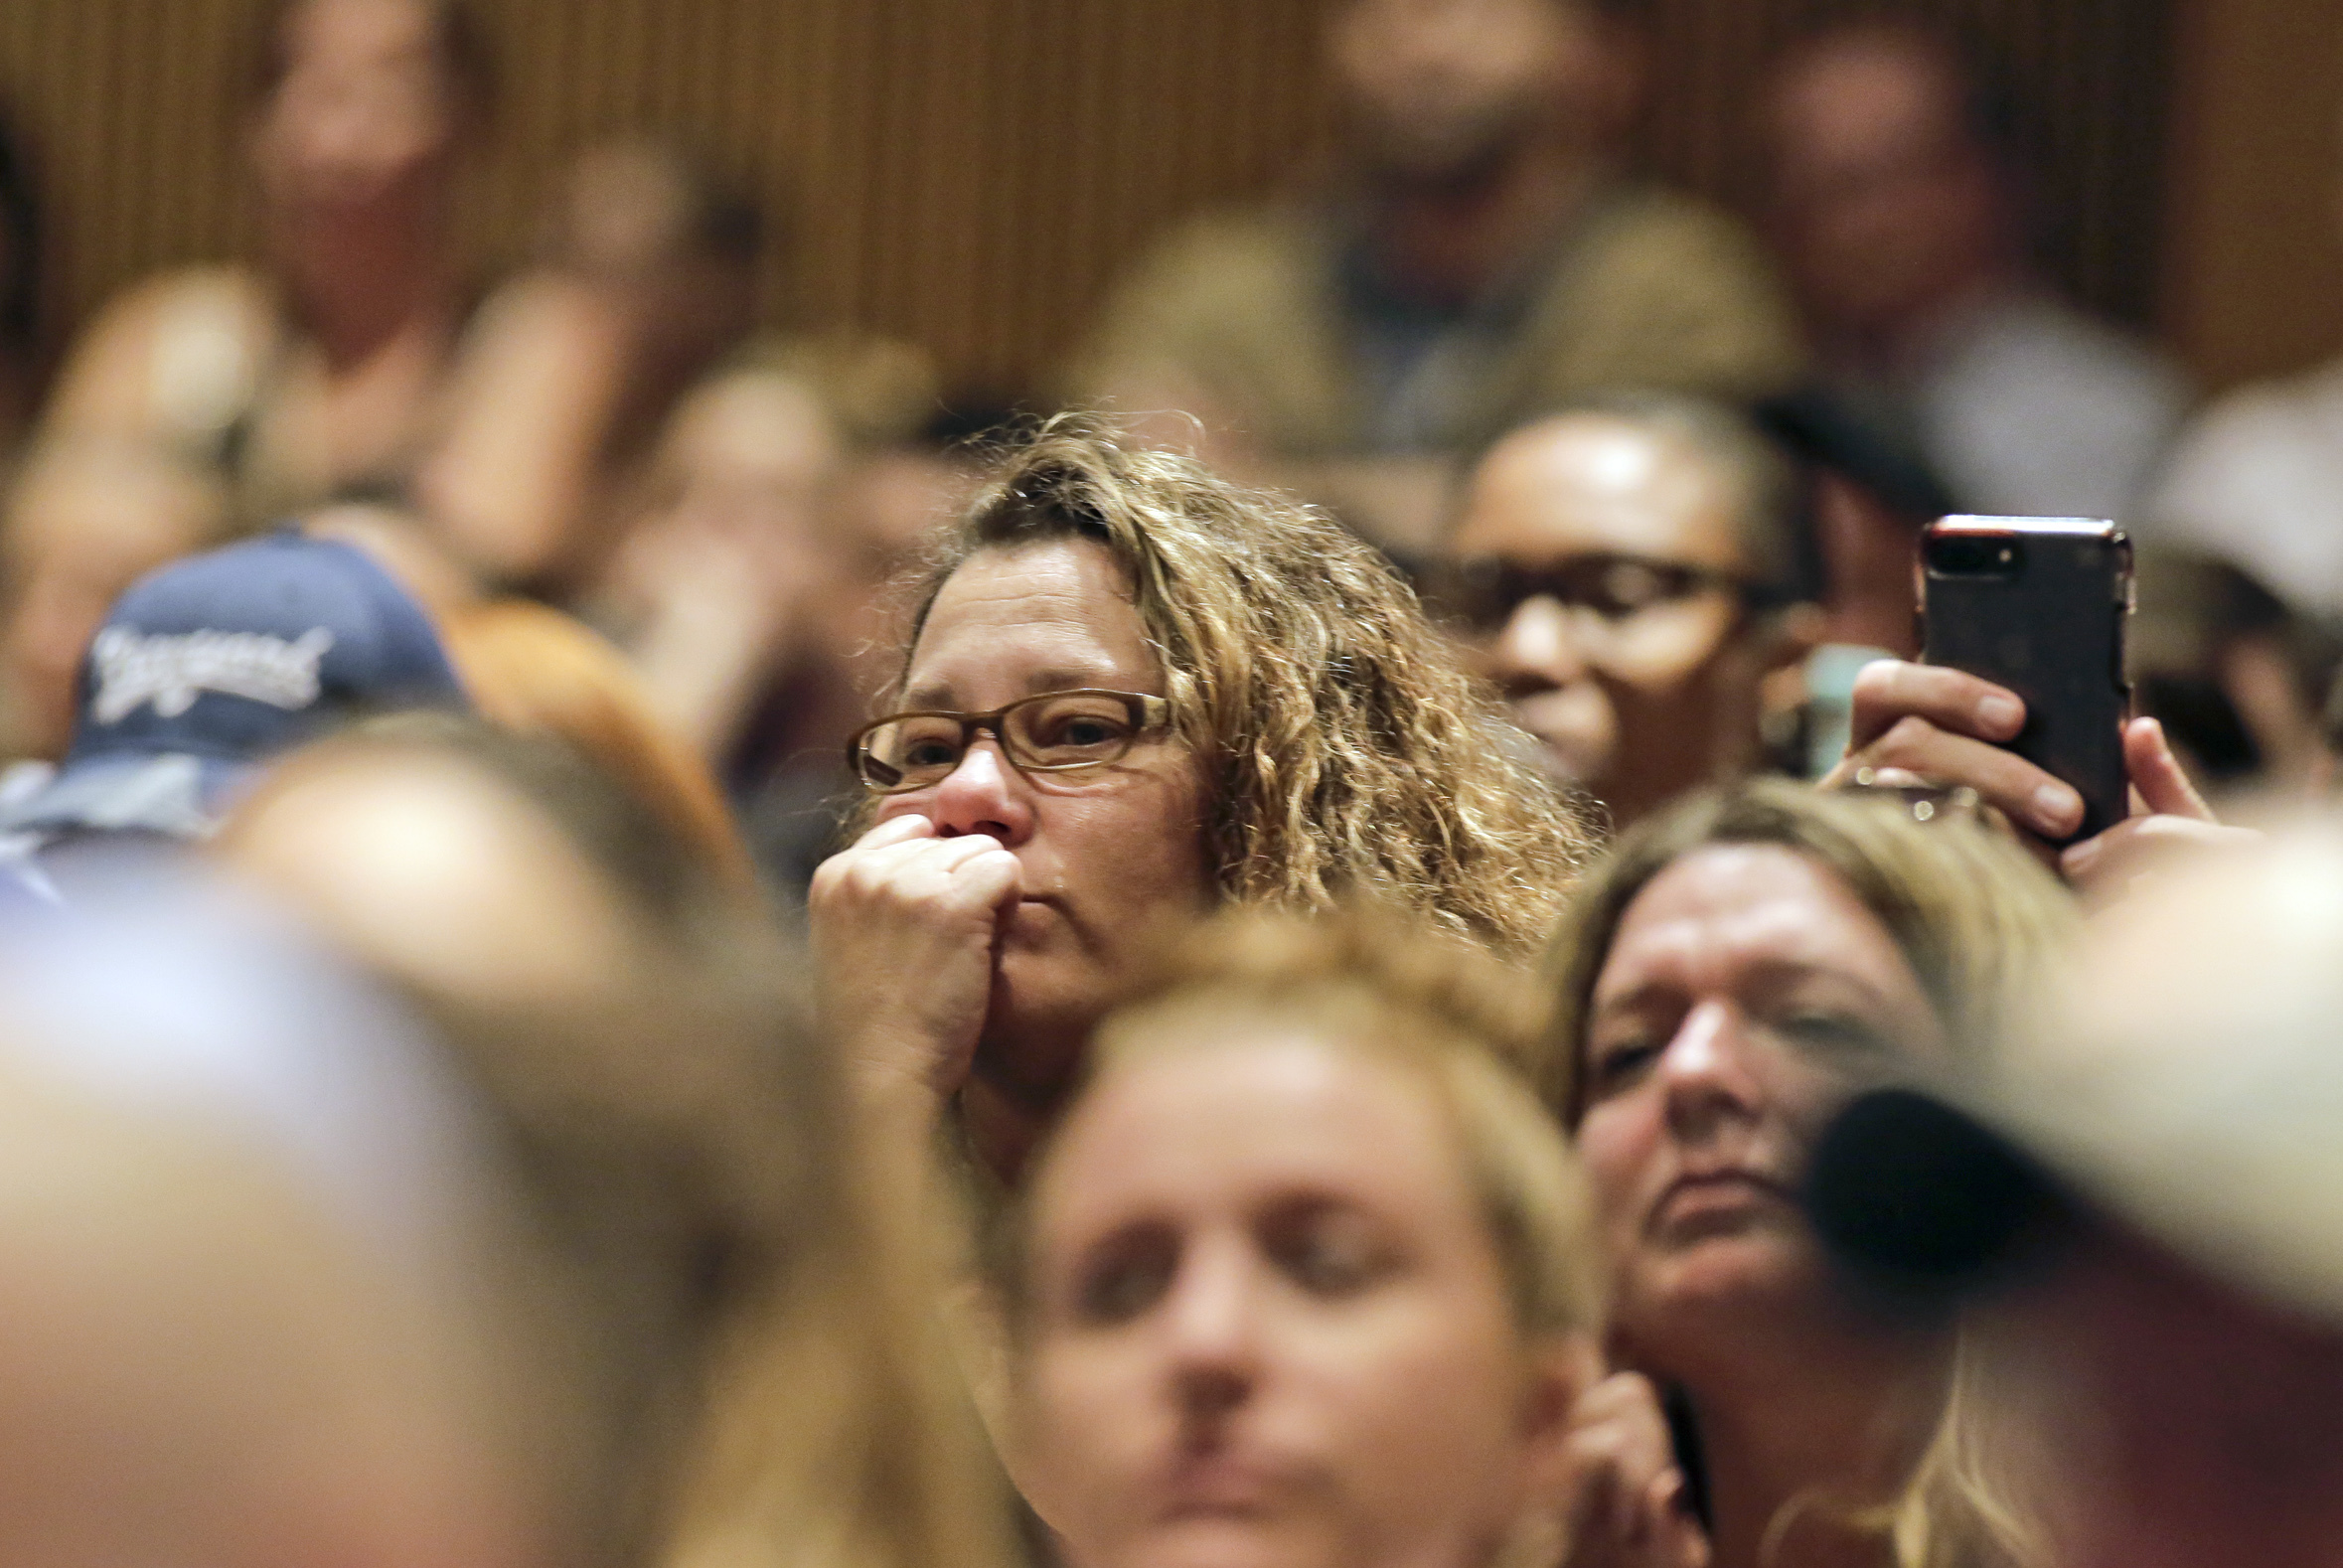 The 1020 seat auditorium was standing room only during an emergency Monroe Twp school board meeting at Williamstown High School theater in Williamstown, NJ on Oct. 6, 2017. ELIZABETH ROBERTSON / Staff Photographer The nearly 6,000 students who attend public schools in Williamstown will have the week off so the Monroe School District can inspect all the schools for mold. Mold was found on ceiling tiles in the Williamstown Middle School on Friday, one day after the Holly Glen Elementary School was closed due to mold found throughout that building. The problem took off from there.